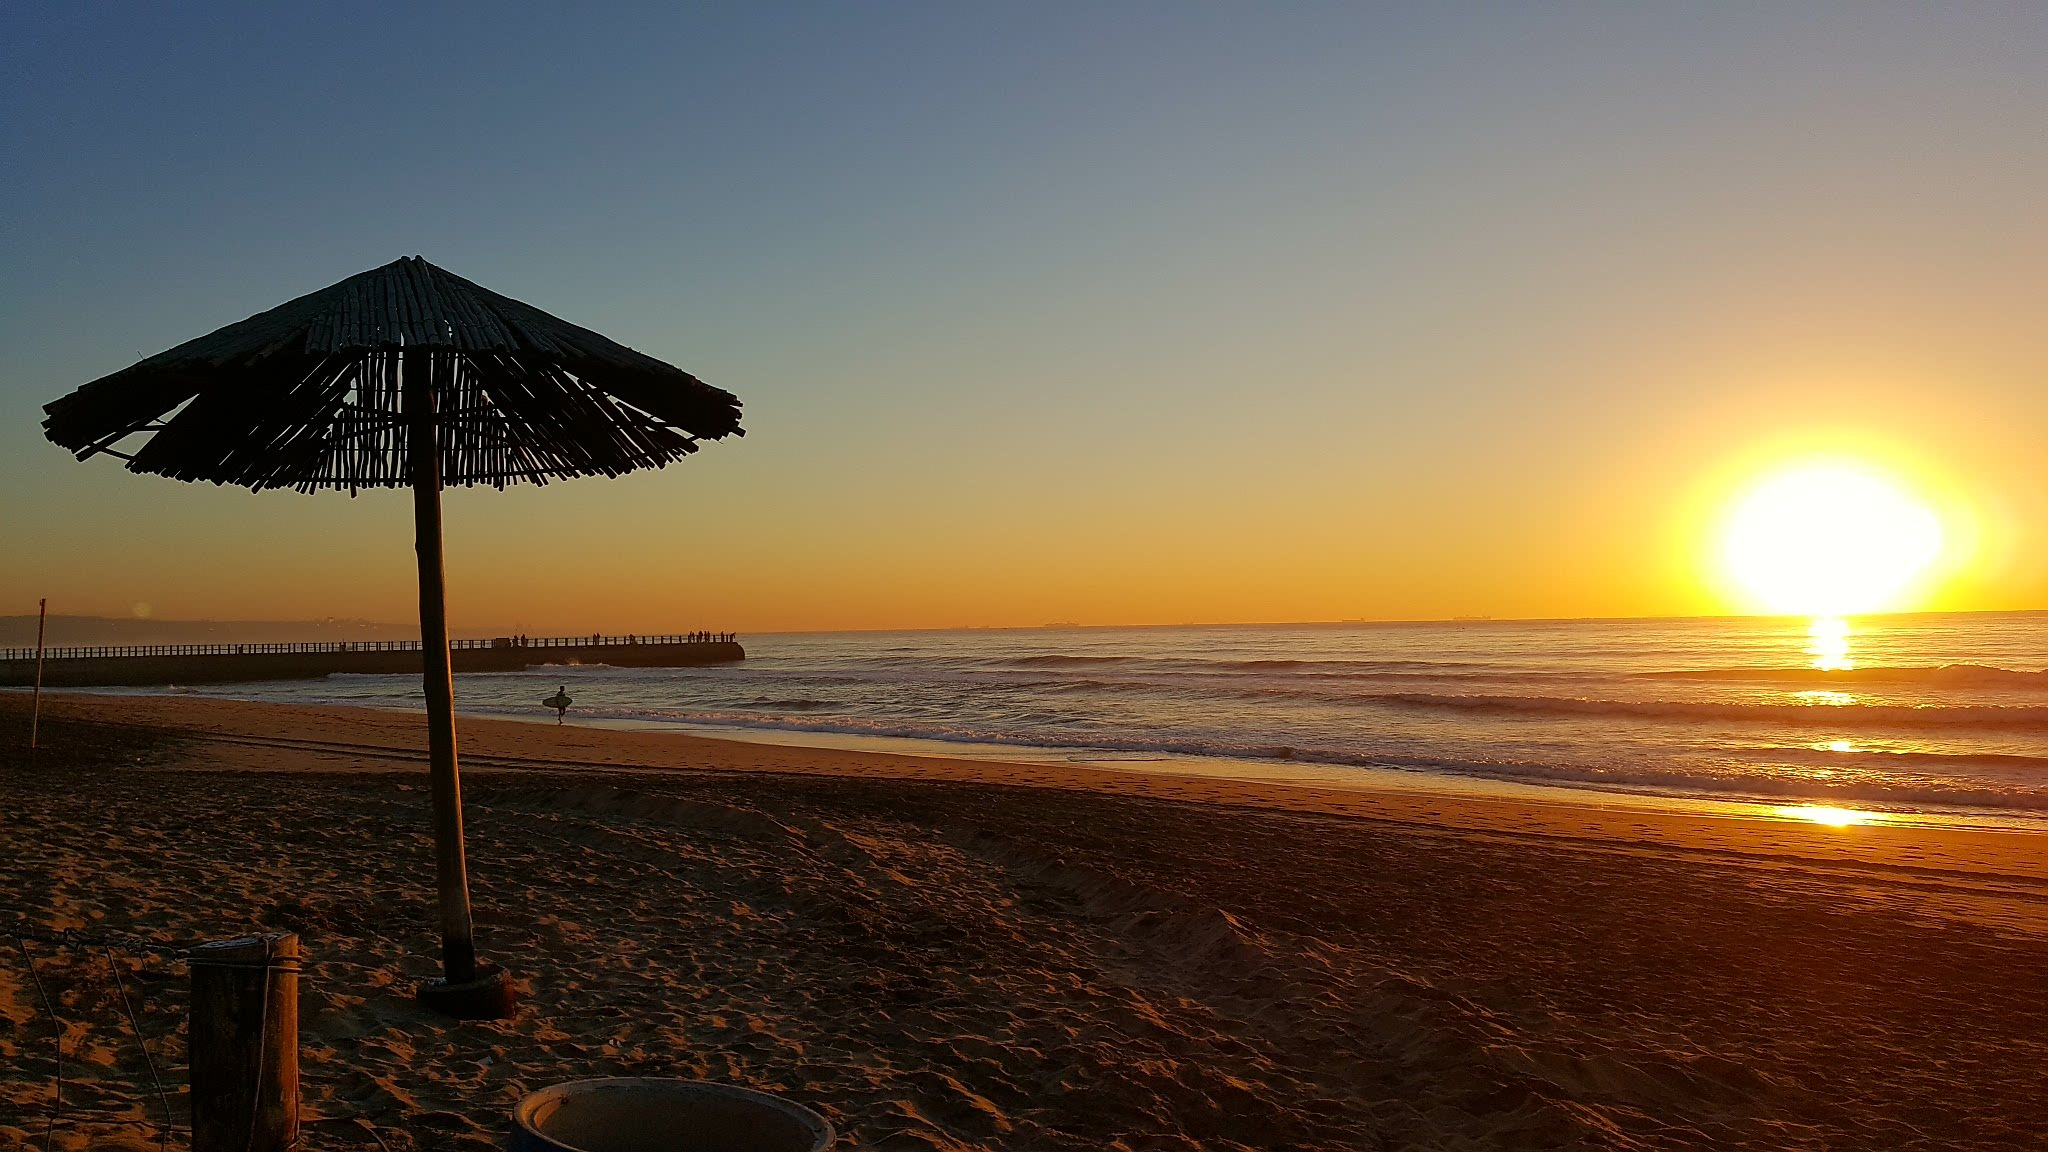 Sunrise over the Indian Ocean by Kasthurie Govender